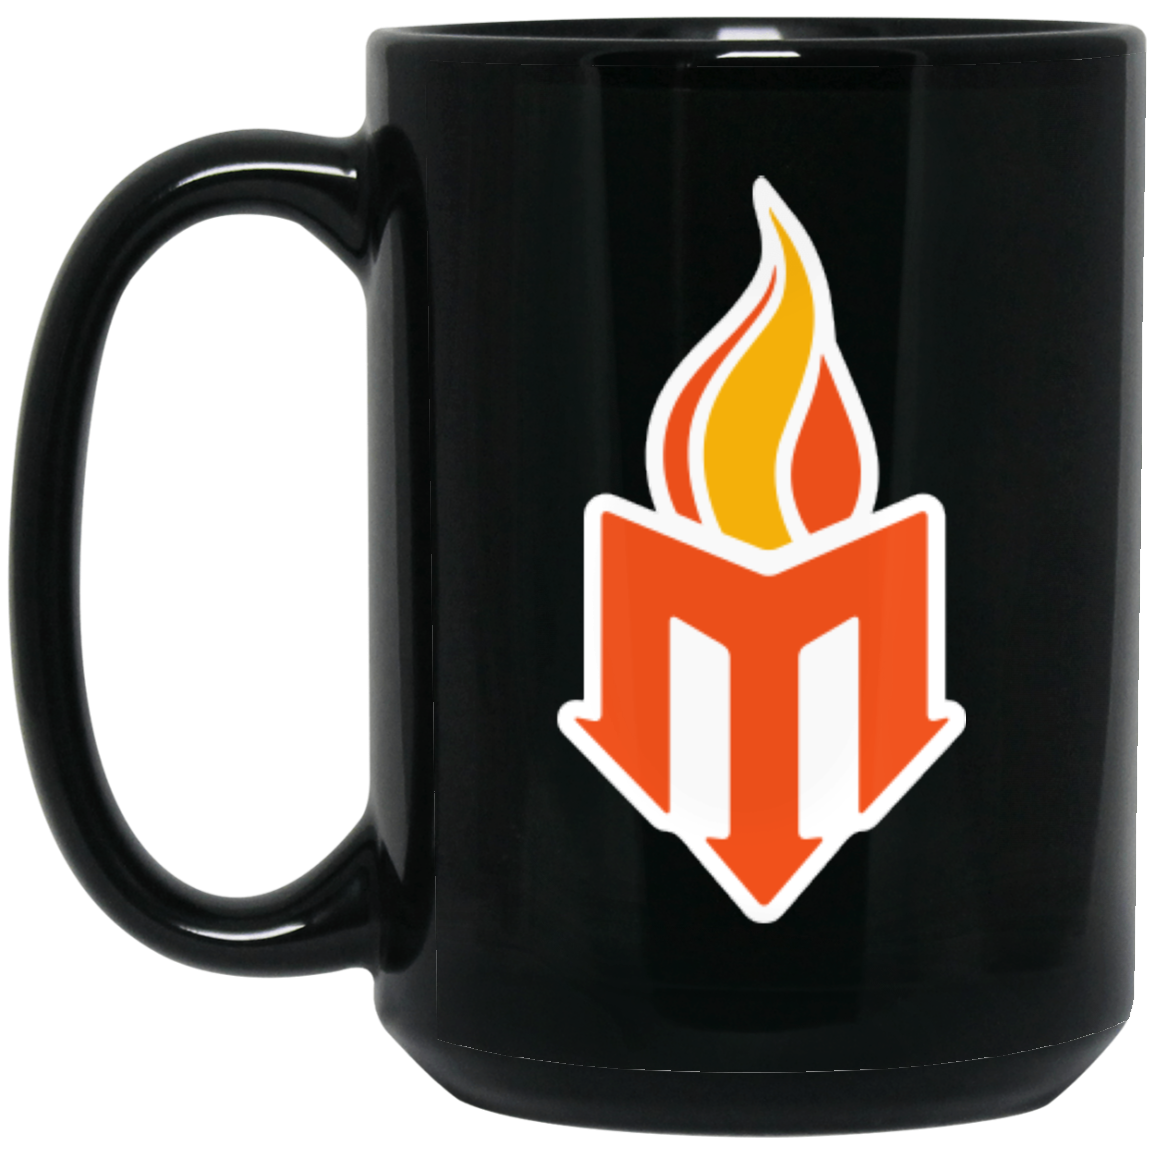 BM15OZ 15 oz. Black Mug - moraydivelights